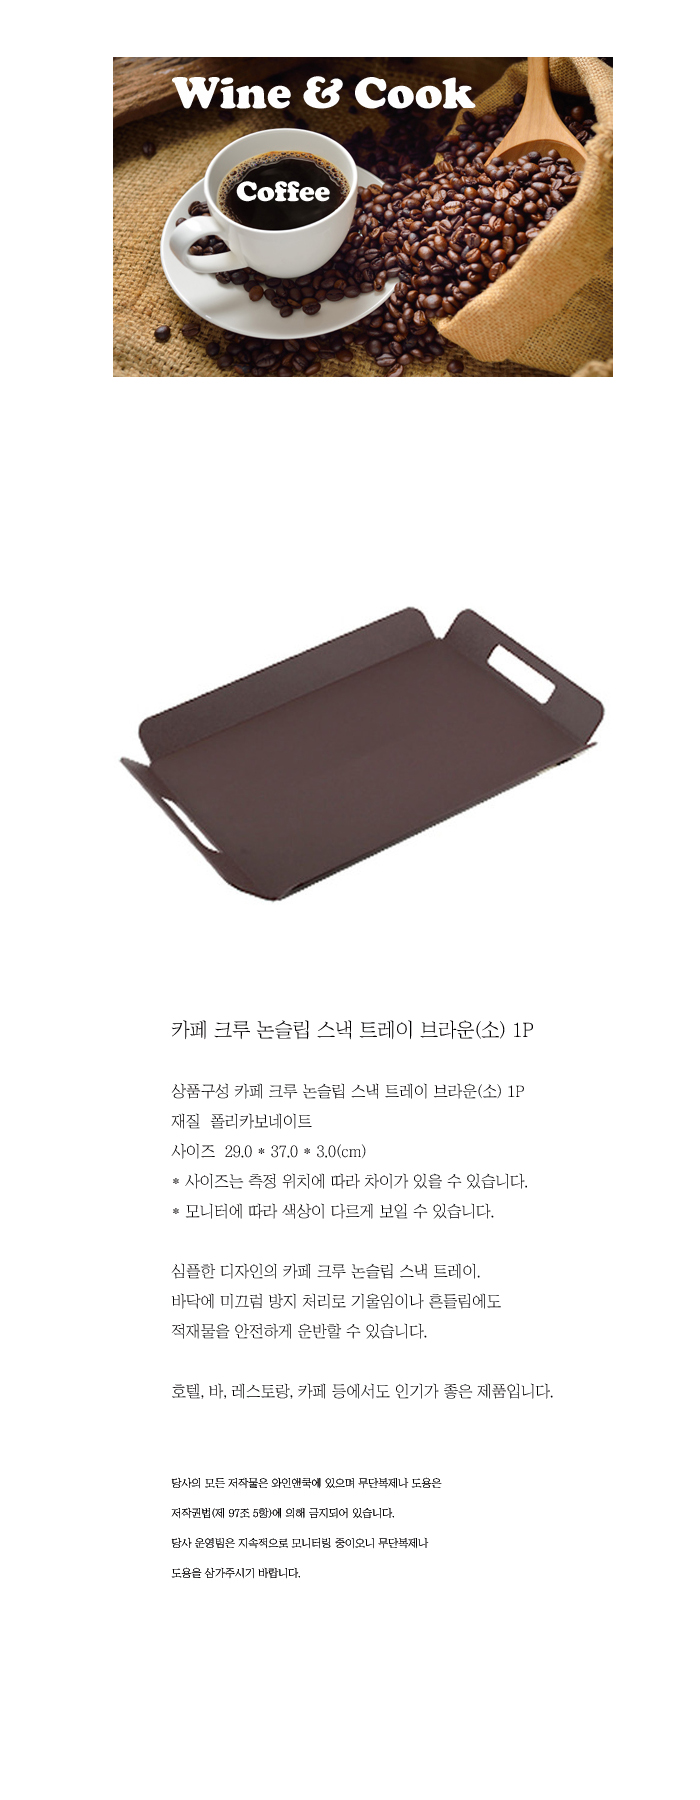 [ WINEQOK ] Cafe Crew Non Slip Snack Tray Brown(Small) 1P